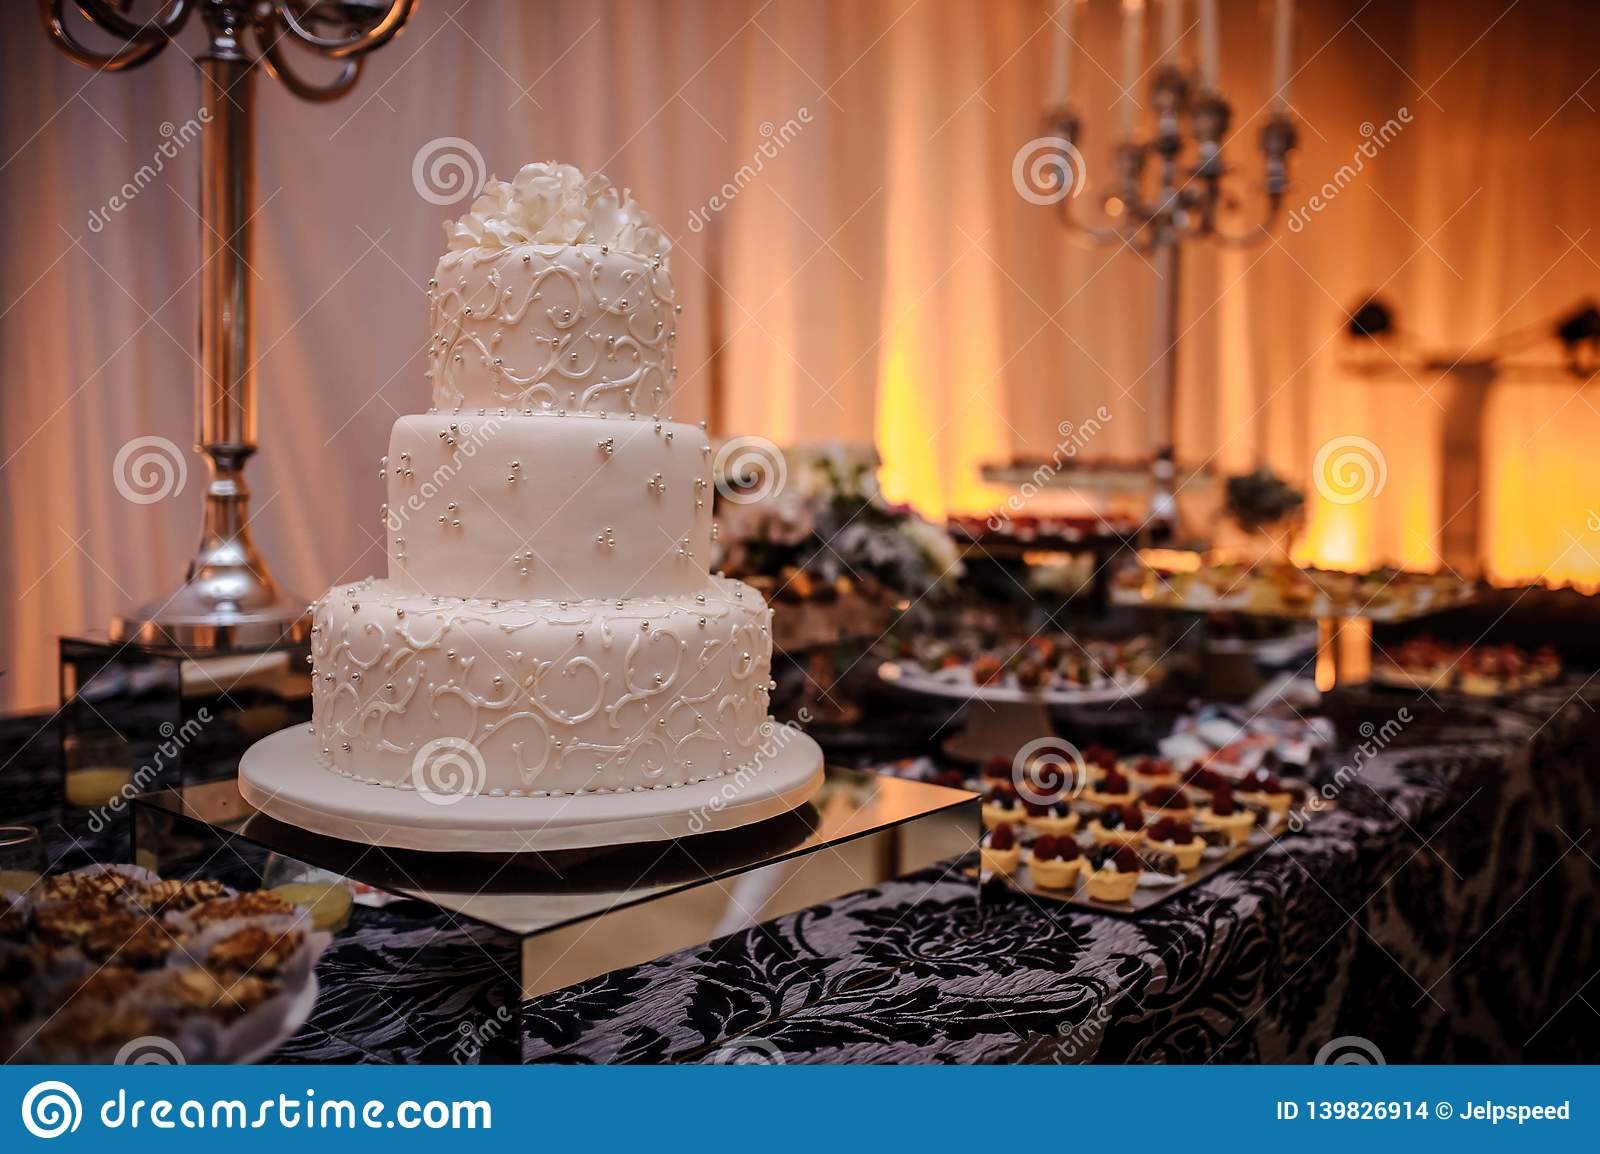 Luxury Wedding Candy Bar With Cake Pastries Macaroons And Cake